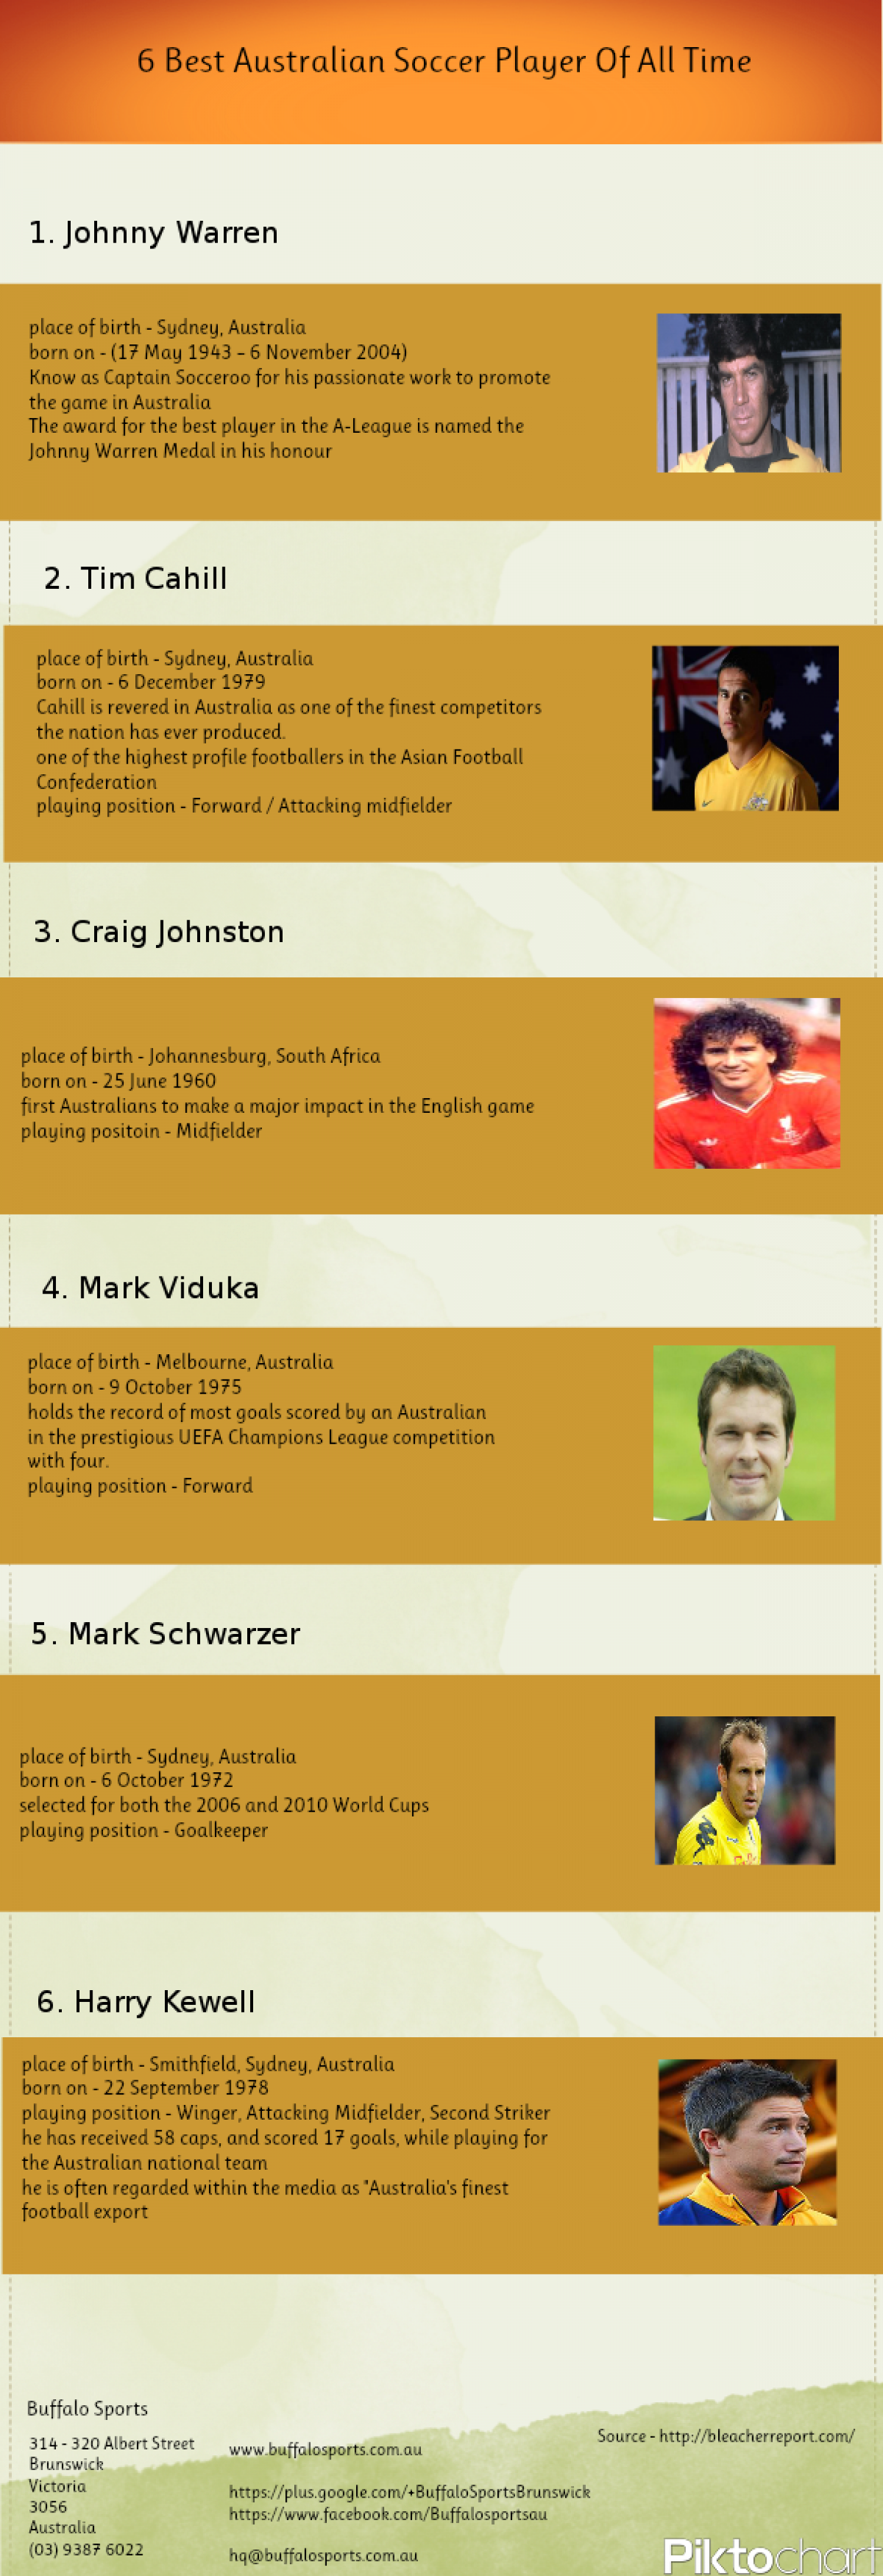 6 Best Australian Soccer Player Of All Time Infographic